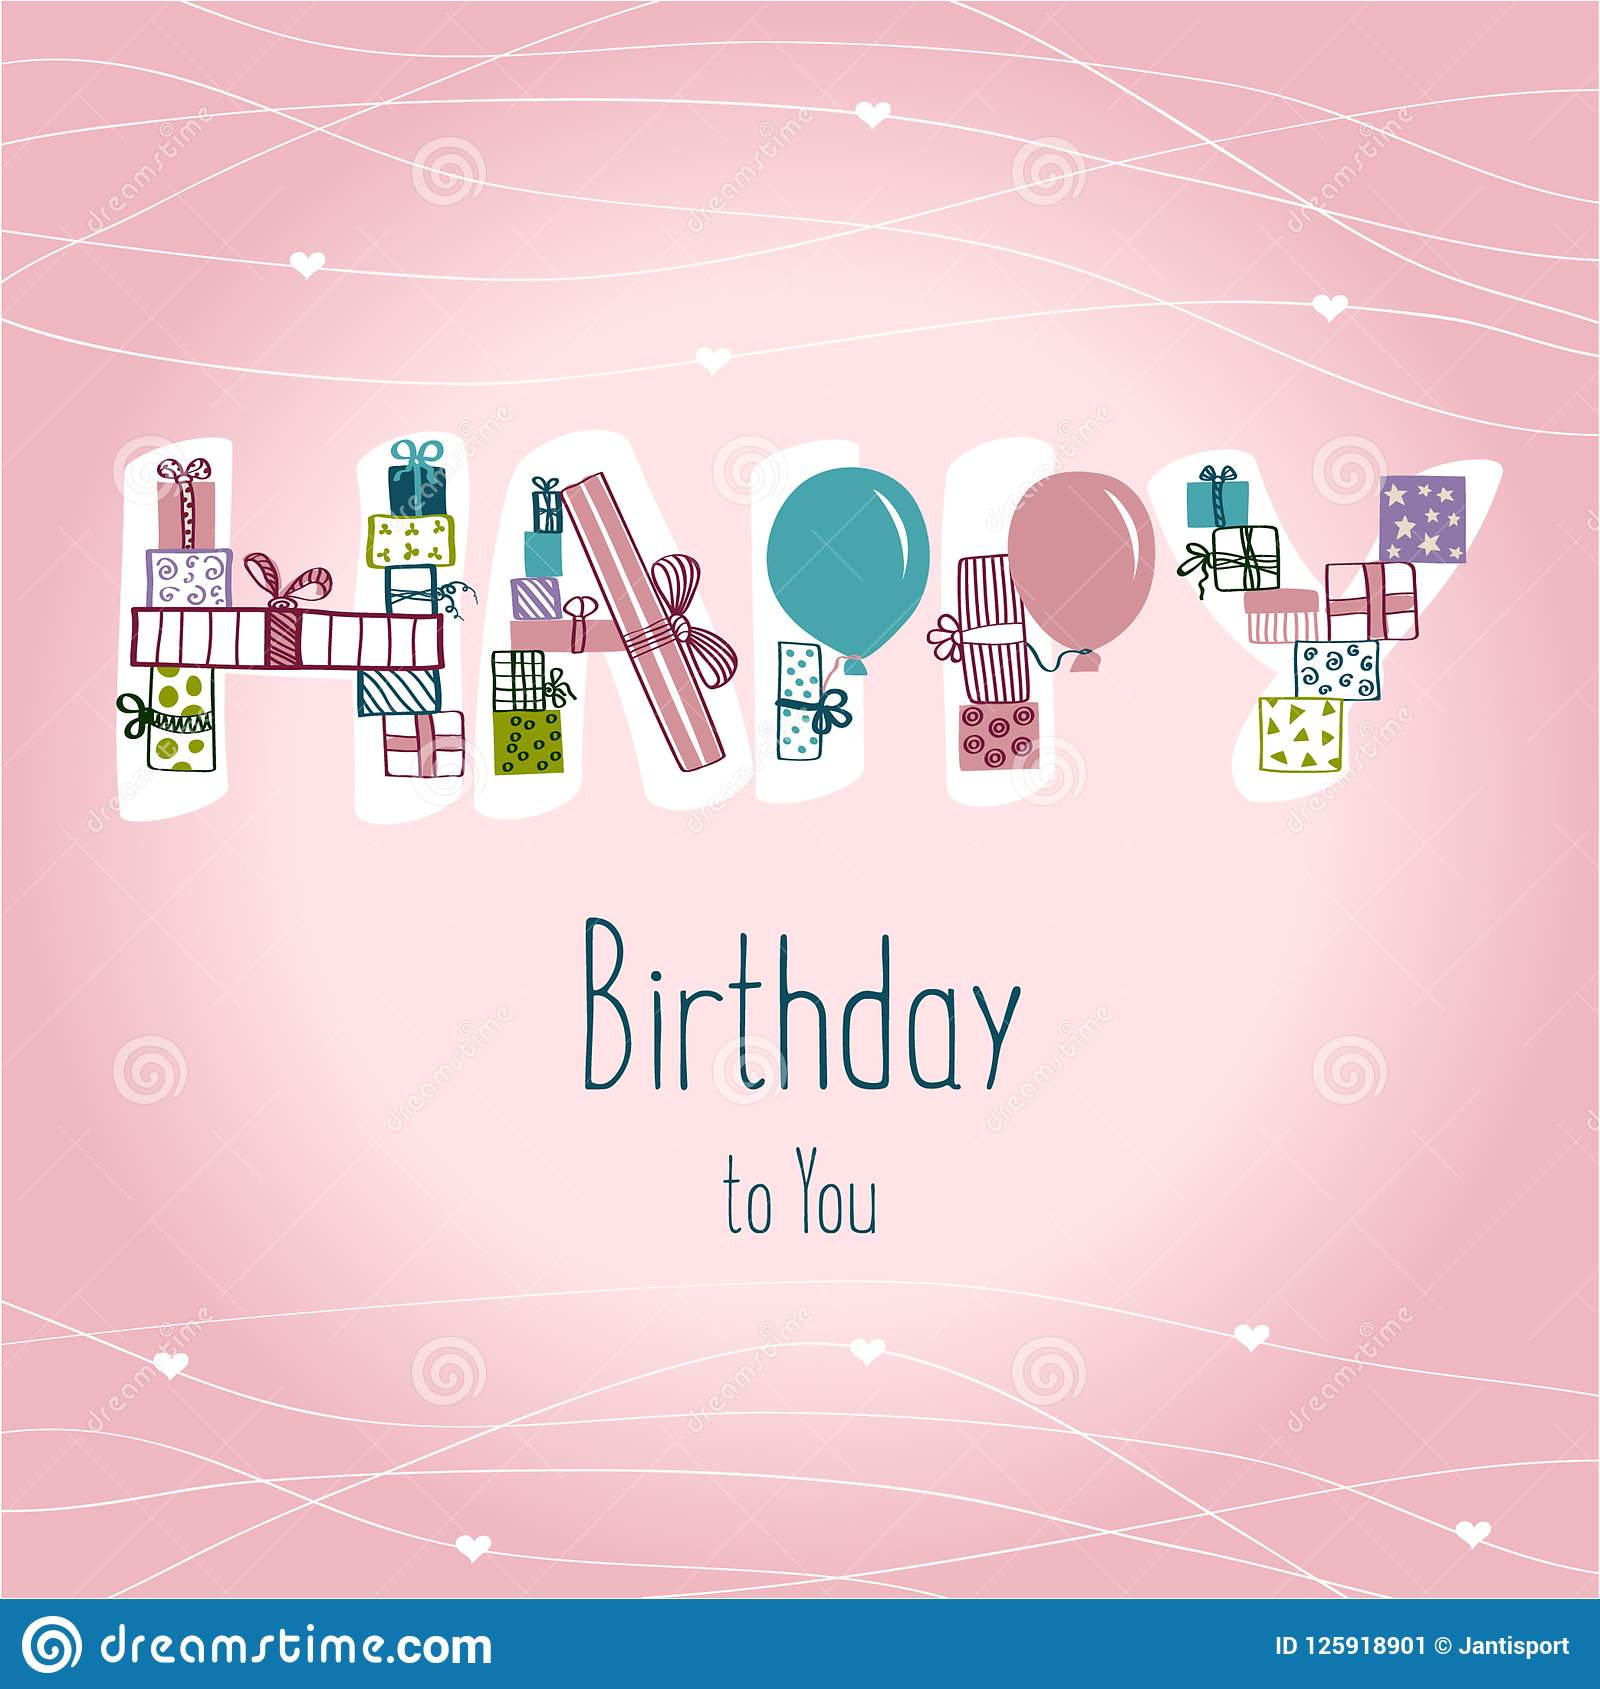 Happy Birthday Greeting Cards Vector Illustration Inscription In The Form Of Gifts Letters From And Balloons Ongratulation